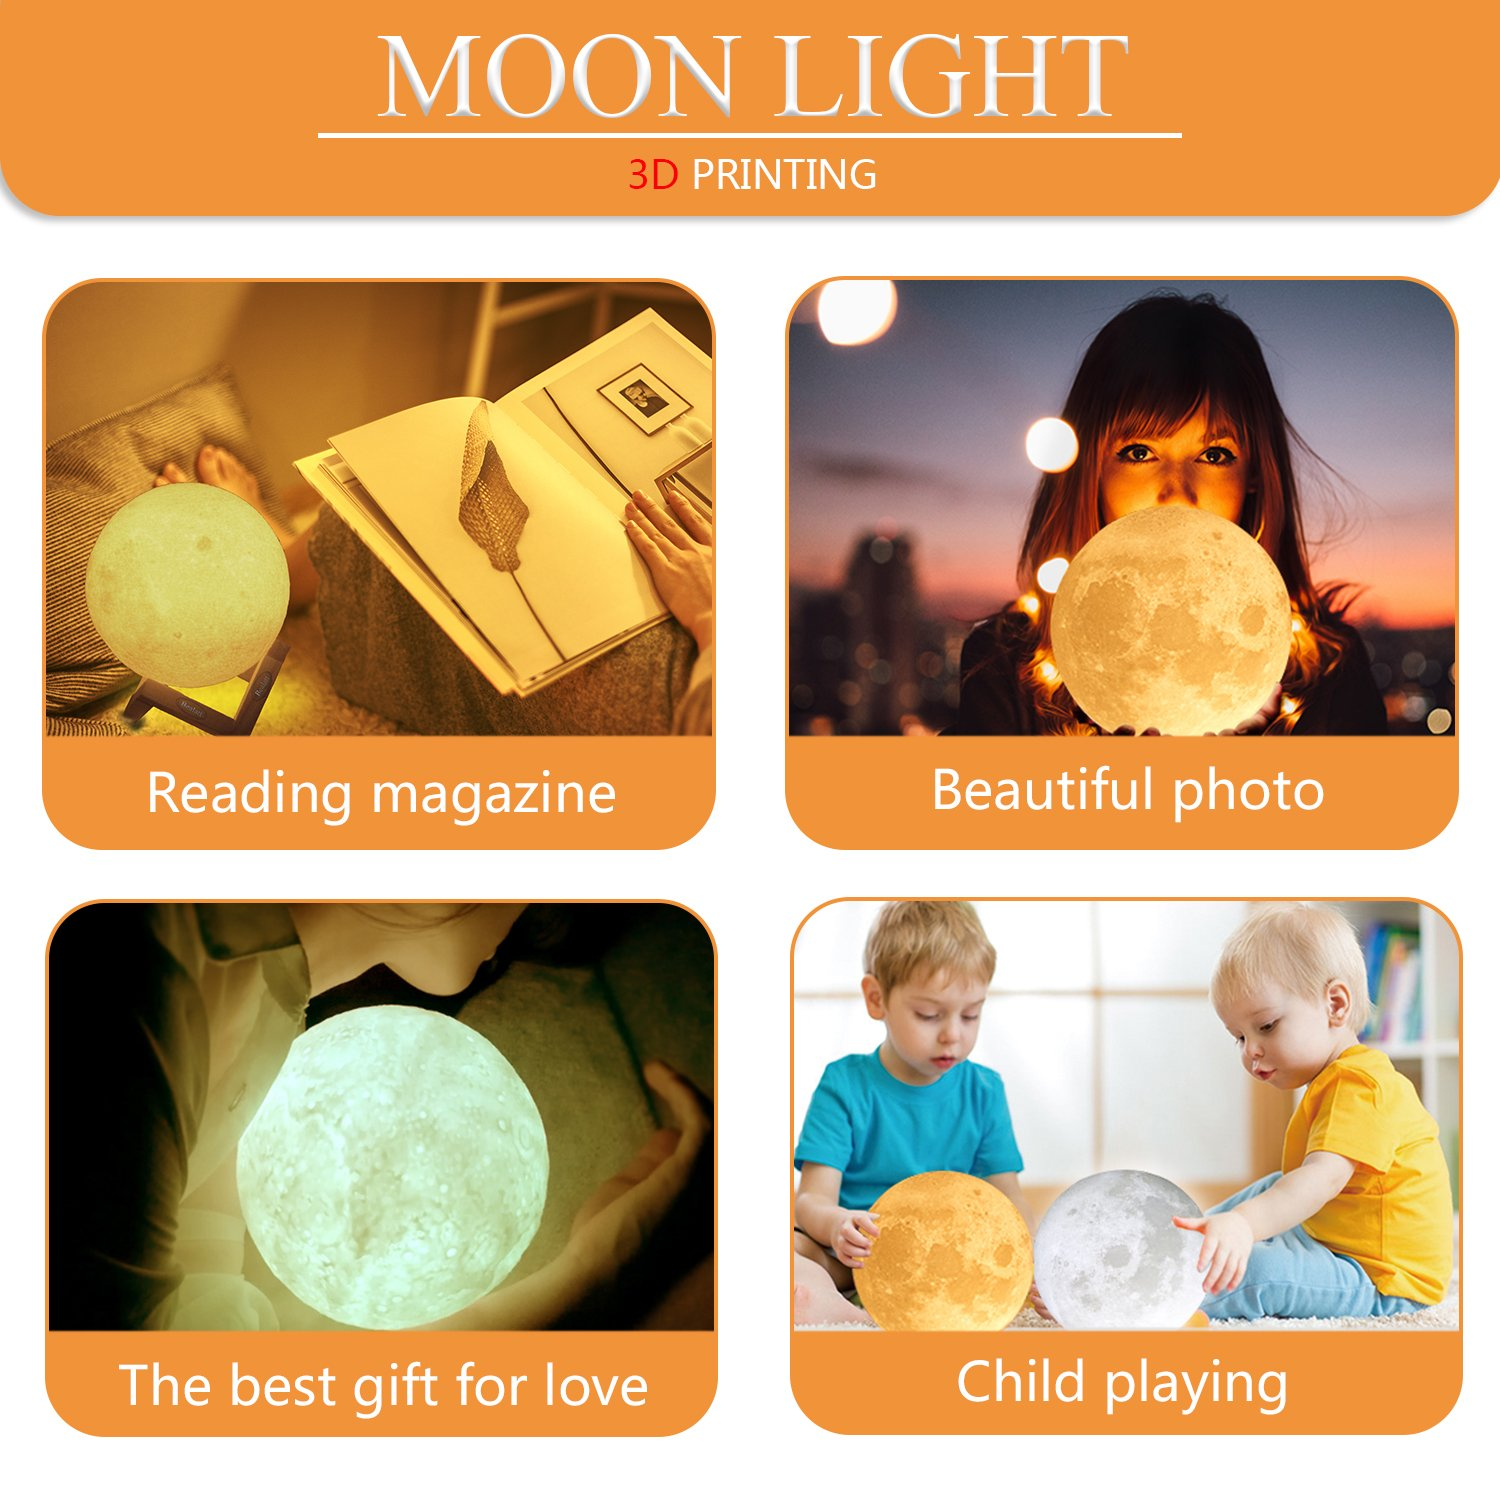 Bealatt Moon Lamp, 3D Printing Moon Light 5.9 Inch Glowing Moon Lamp Touch Control Adjustable Brightness Light Cool and Warm White, Led Night Light with Stand for Kids, Birthday, Bedside by Bealatt (Image #6)